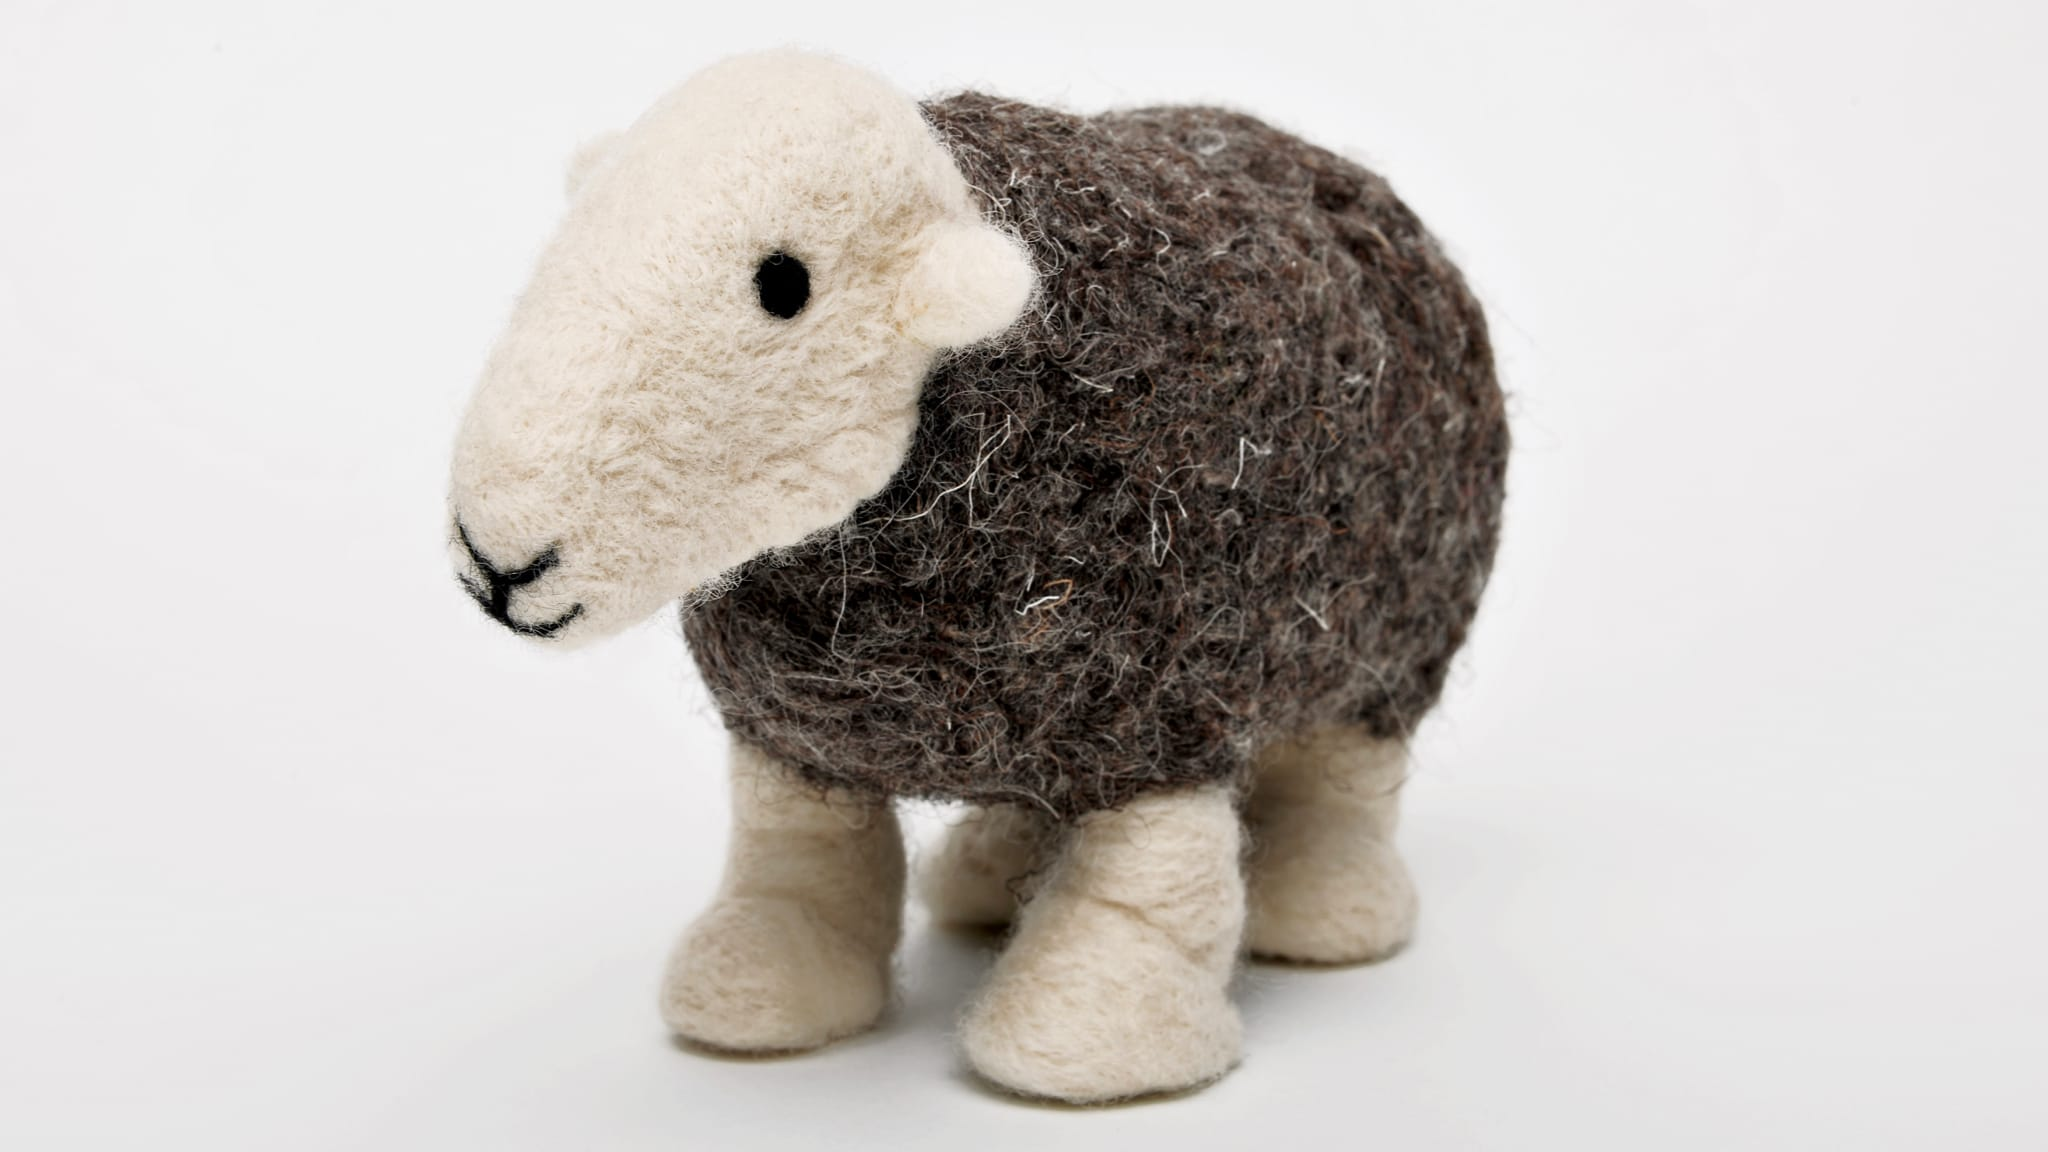 Wool's scaly microtexture allows it to be felted together